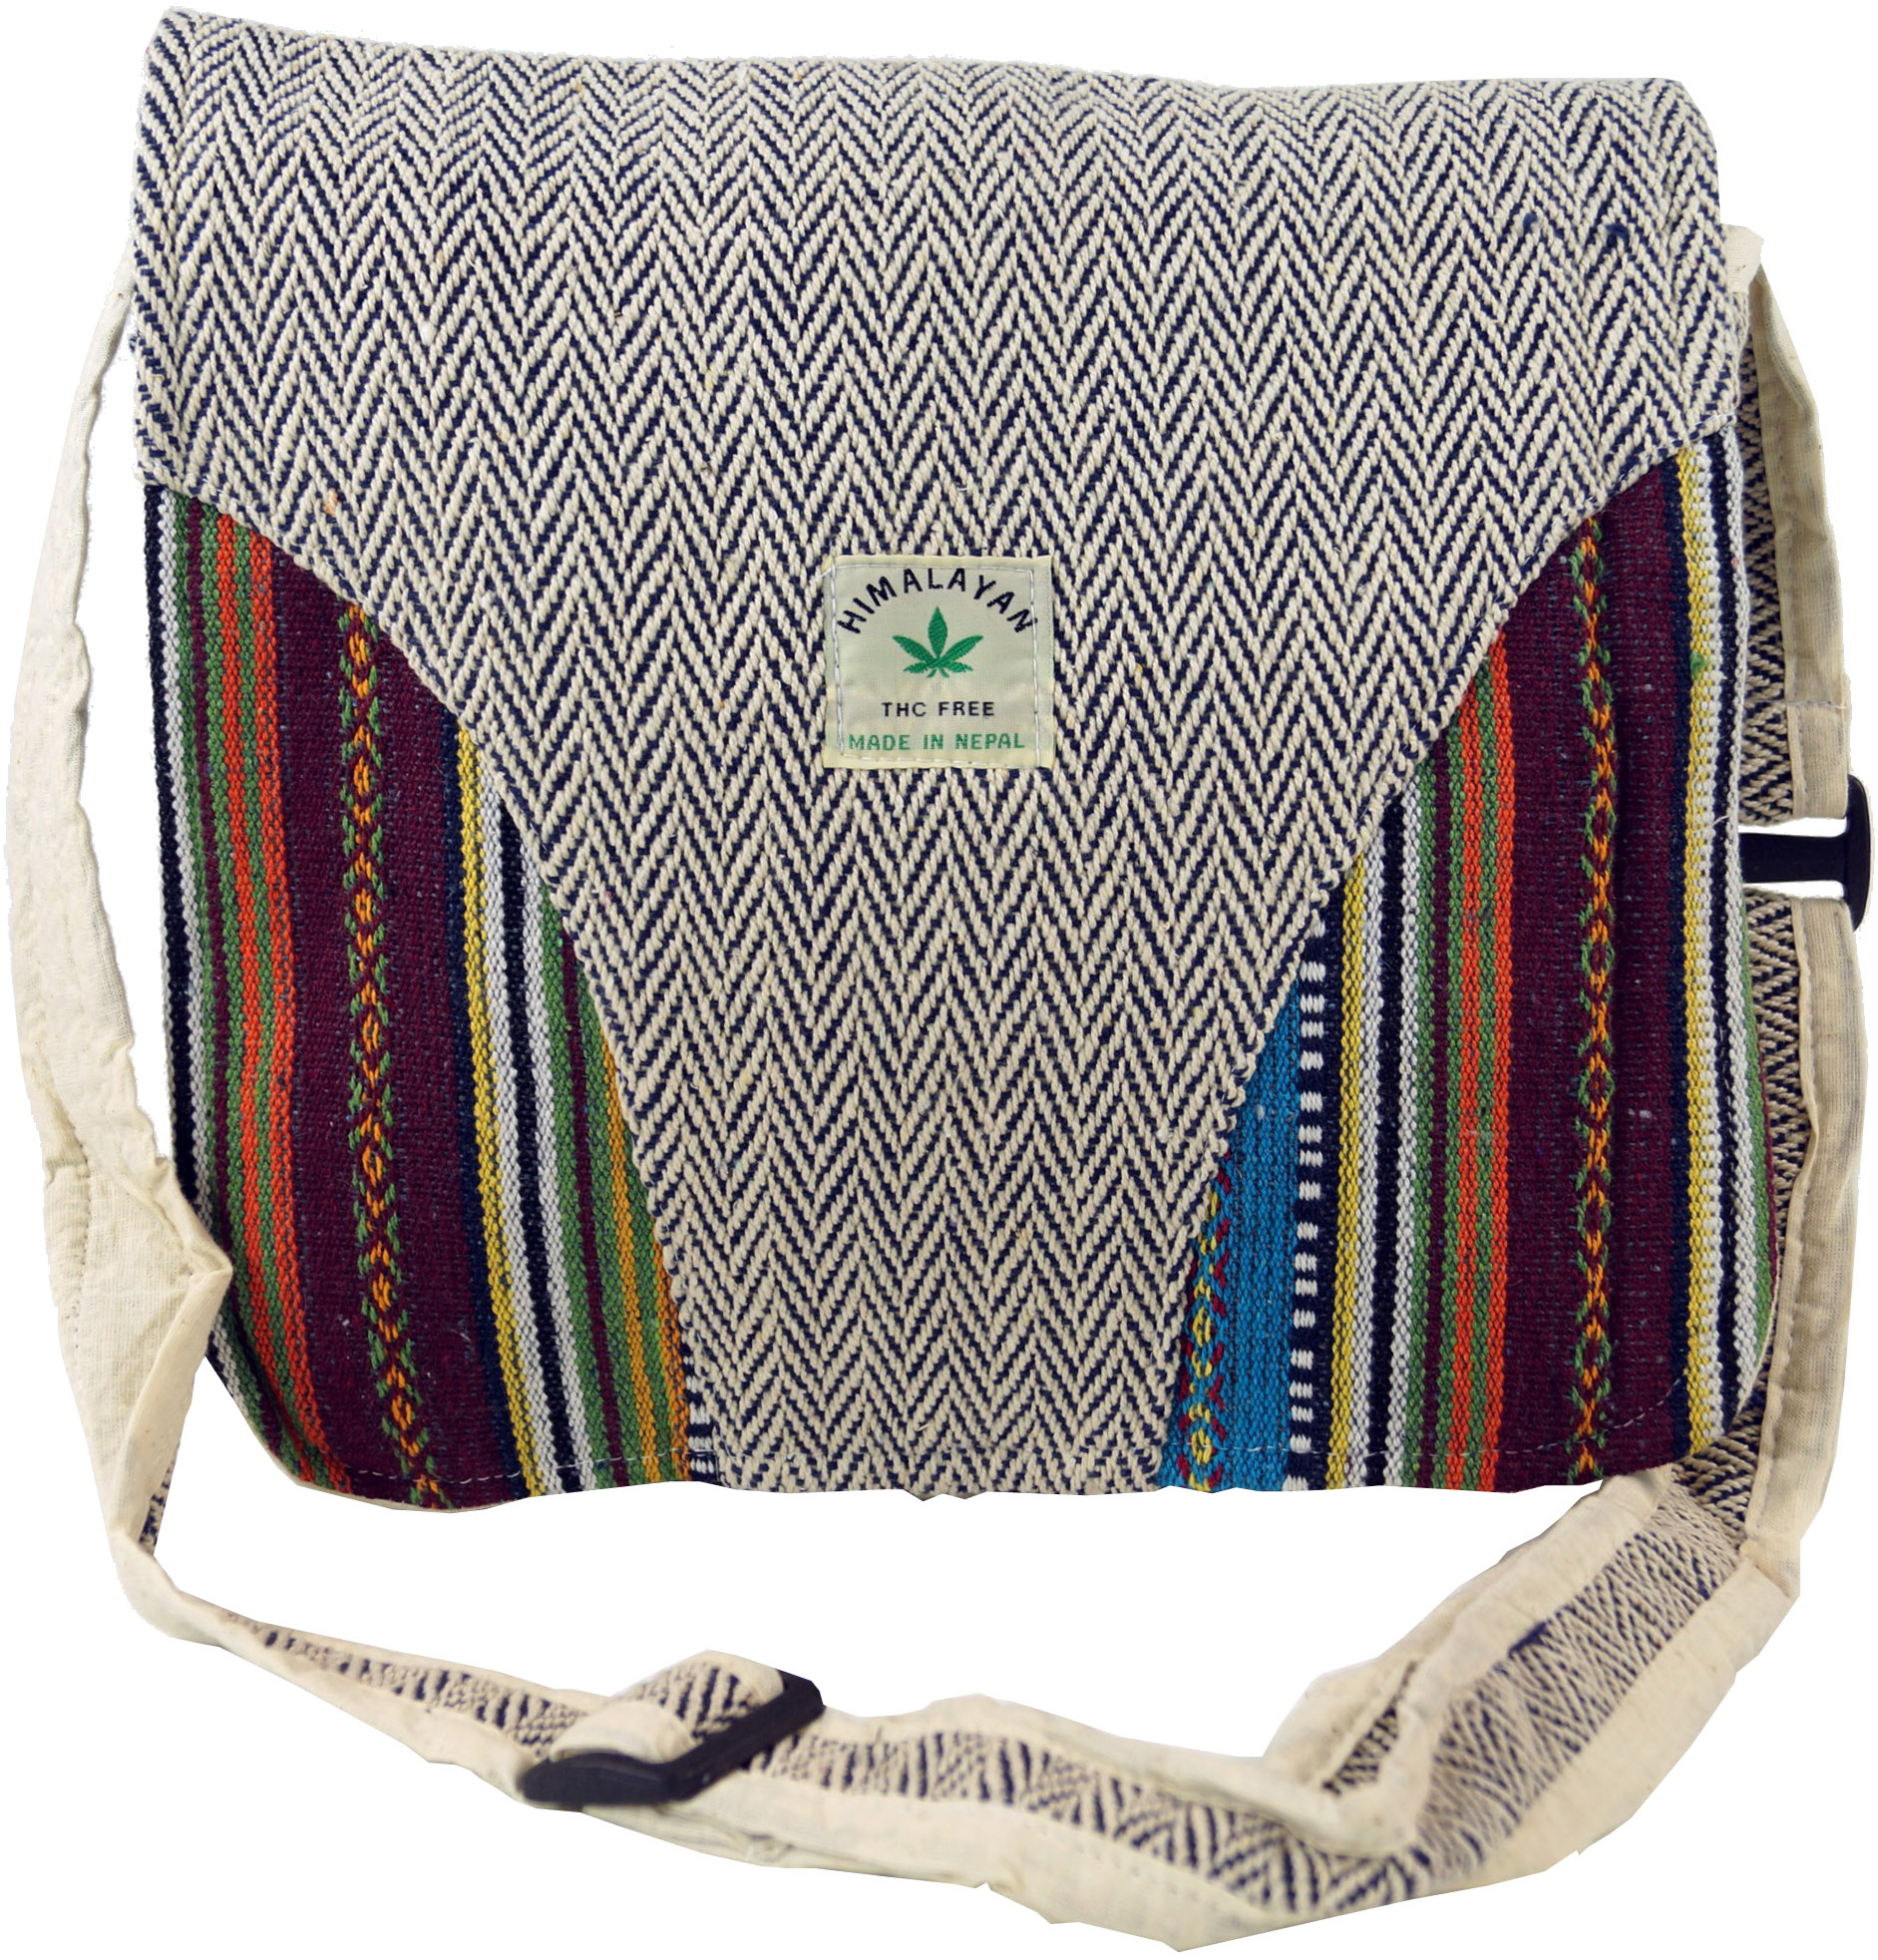 Hemp Shoulder Bag, Ethno Nepal Bag Hemp Bag 3 30x30x10 cm